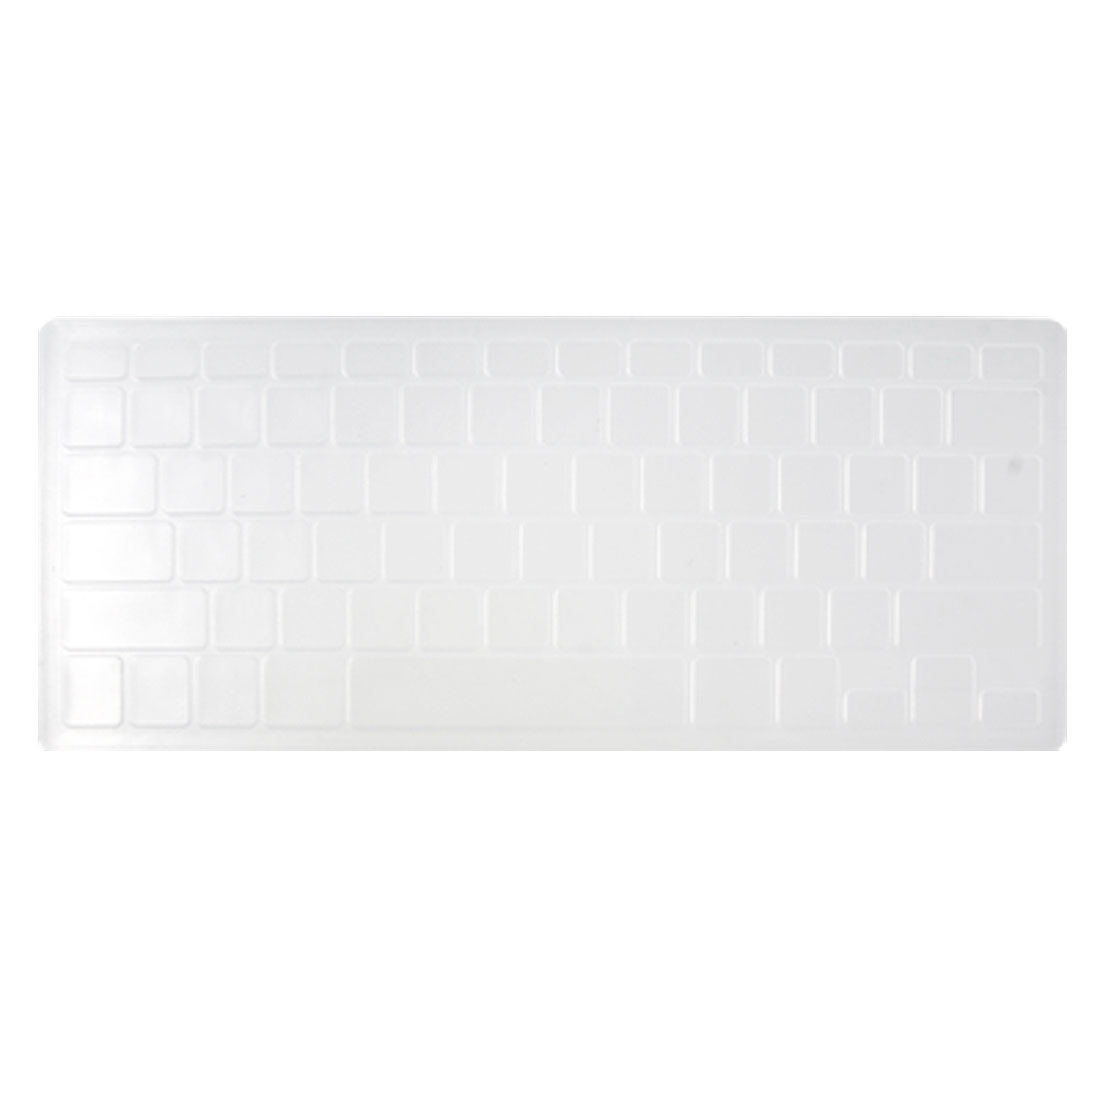 Protective Silicone Soft Keypad Cover Film for Apple Macbook